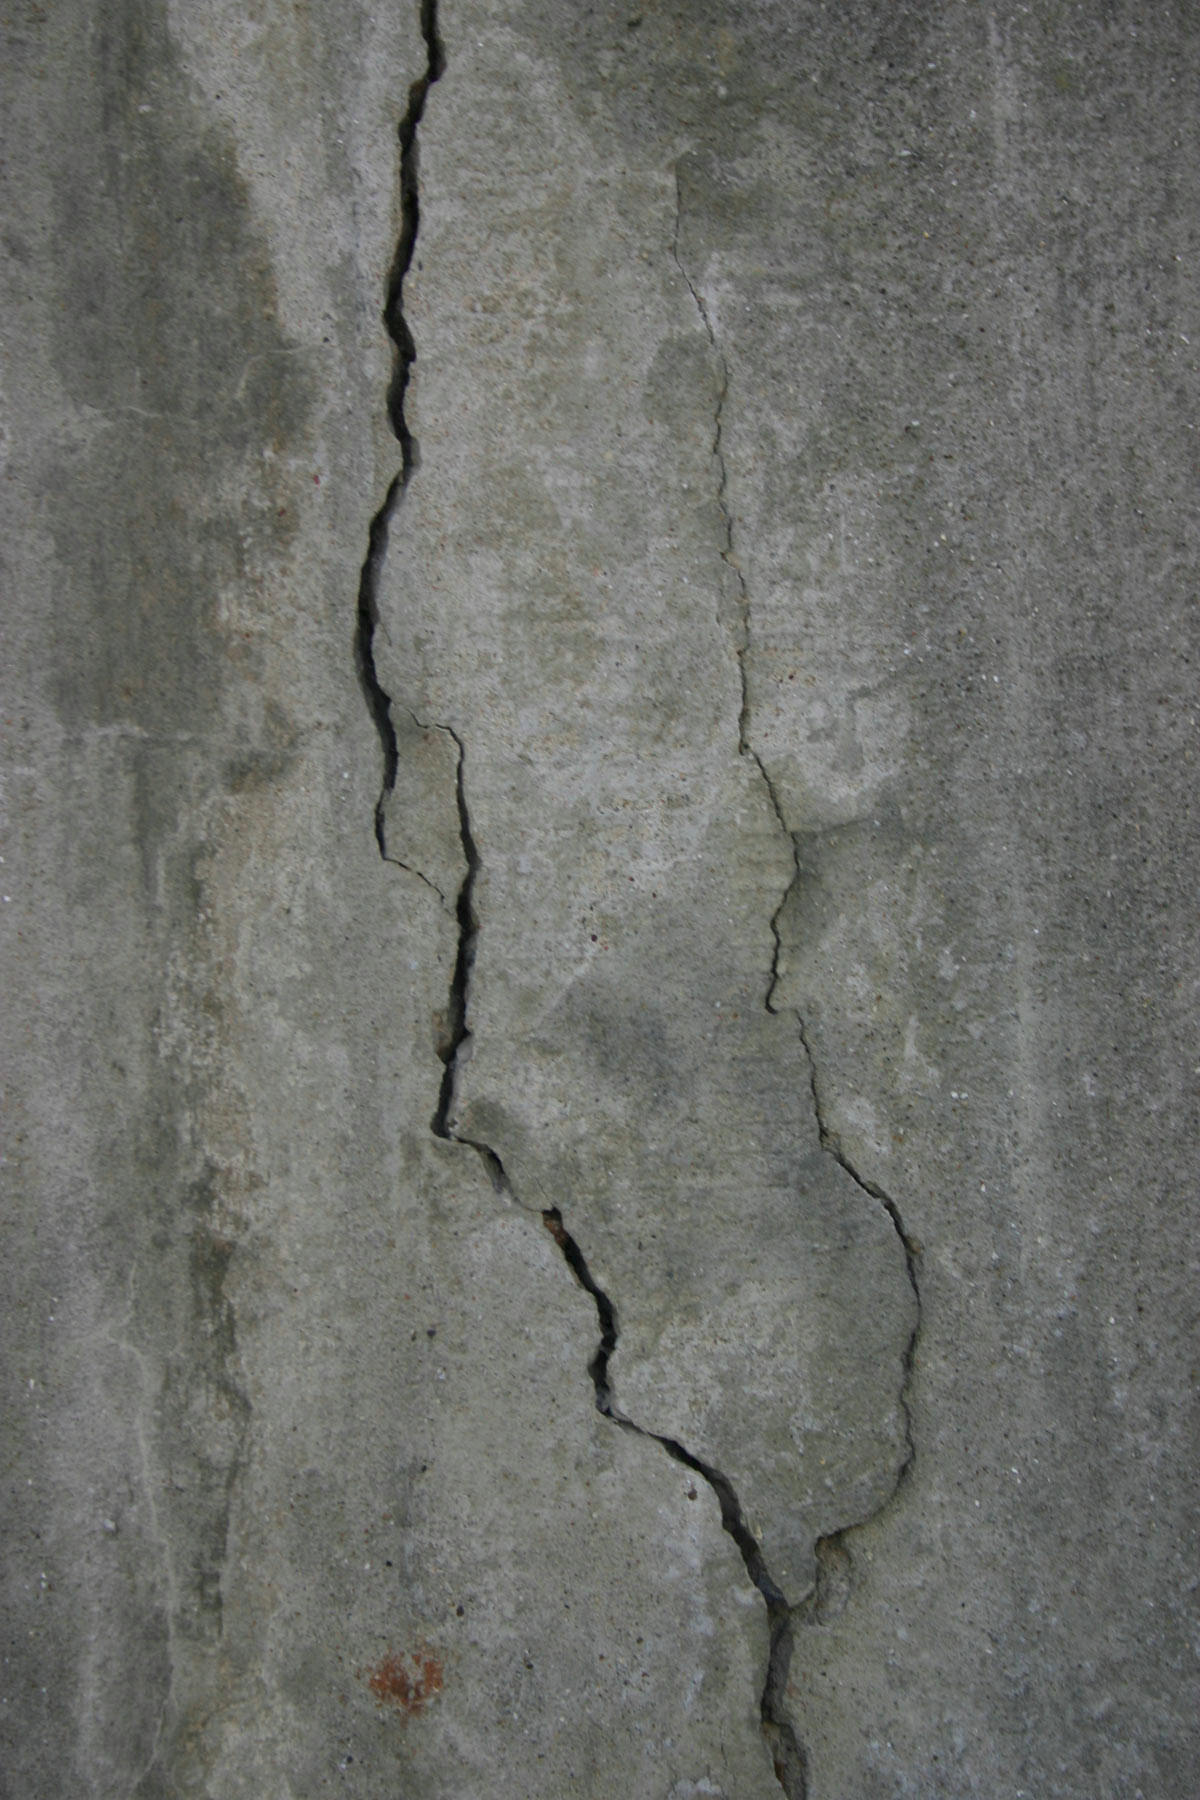 Cracked Concrete Texture For Free